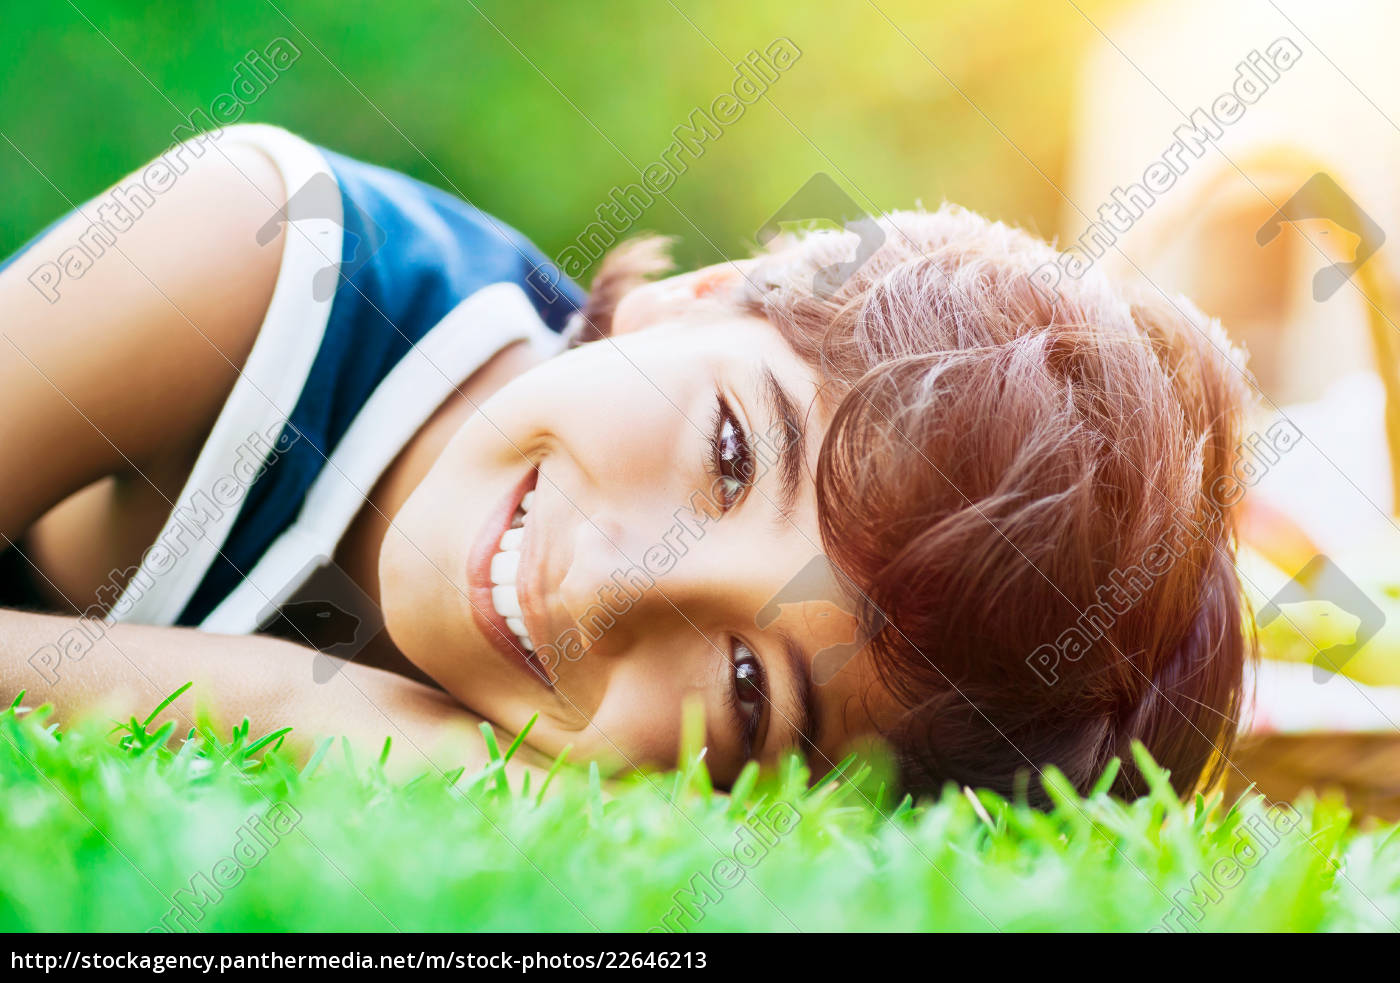 happy, boy, outdoors - 22646213